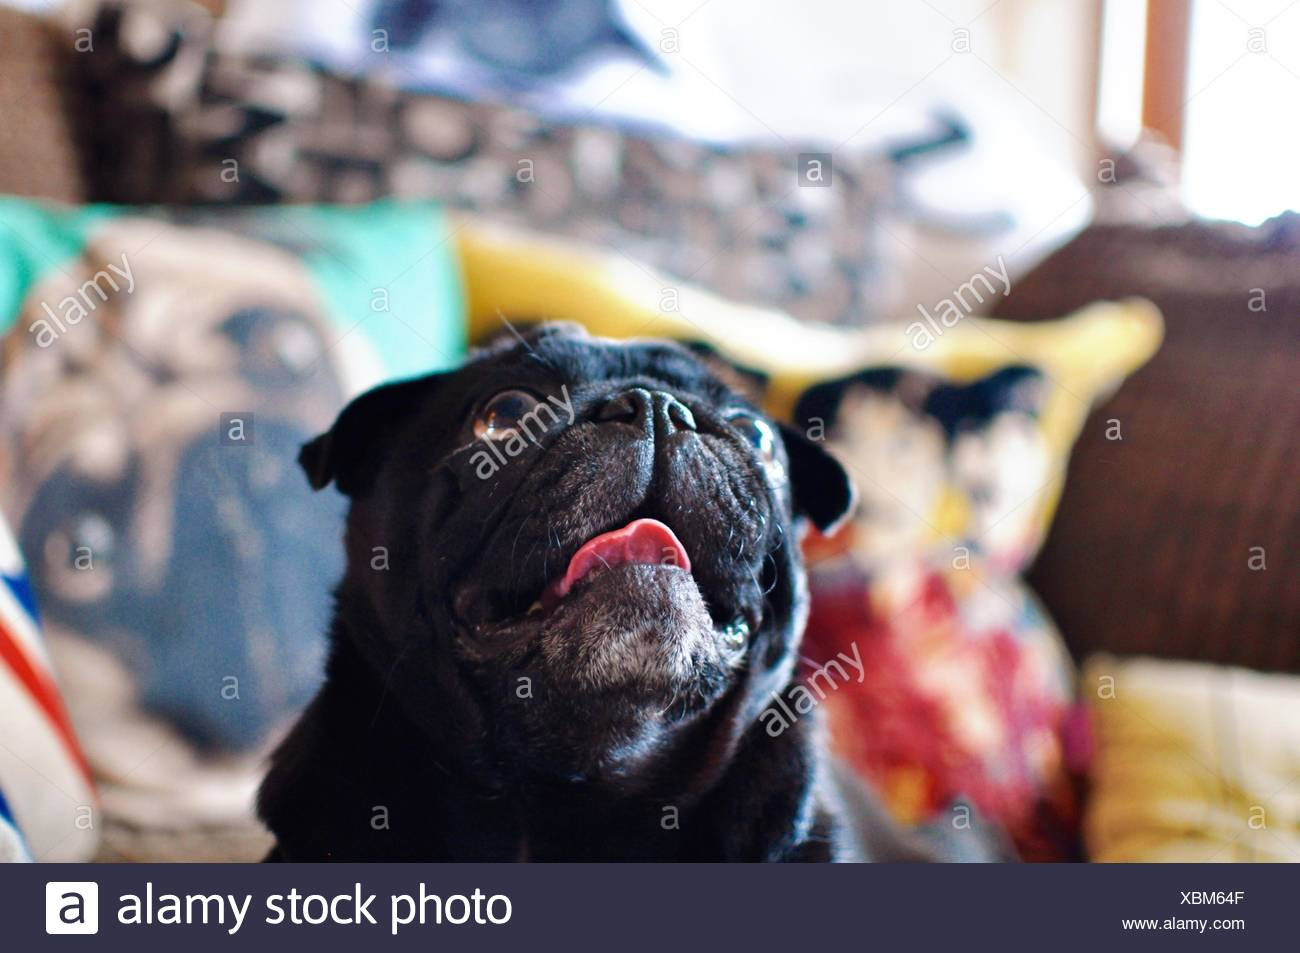 Close-Up Of Black Pug At Home - Stock Image